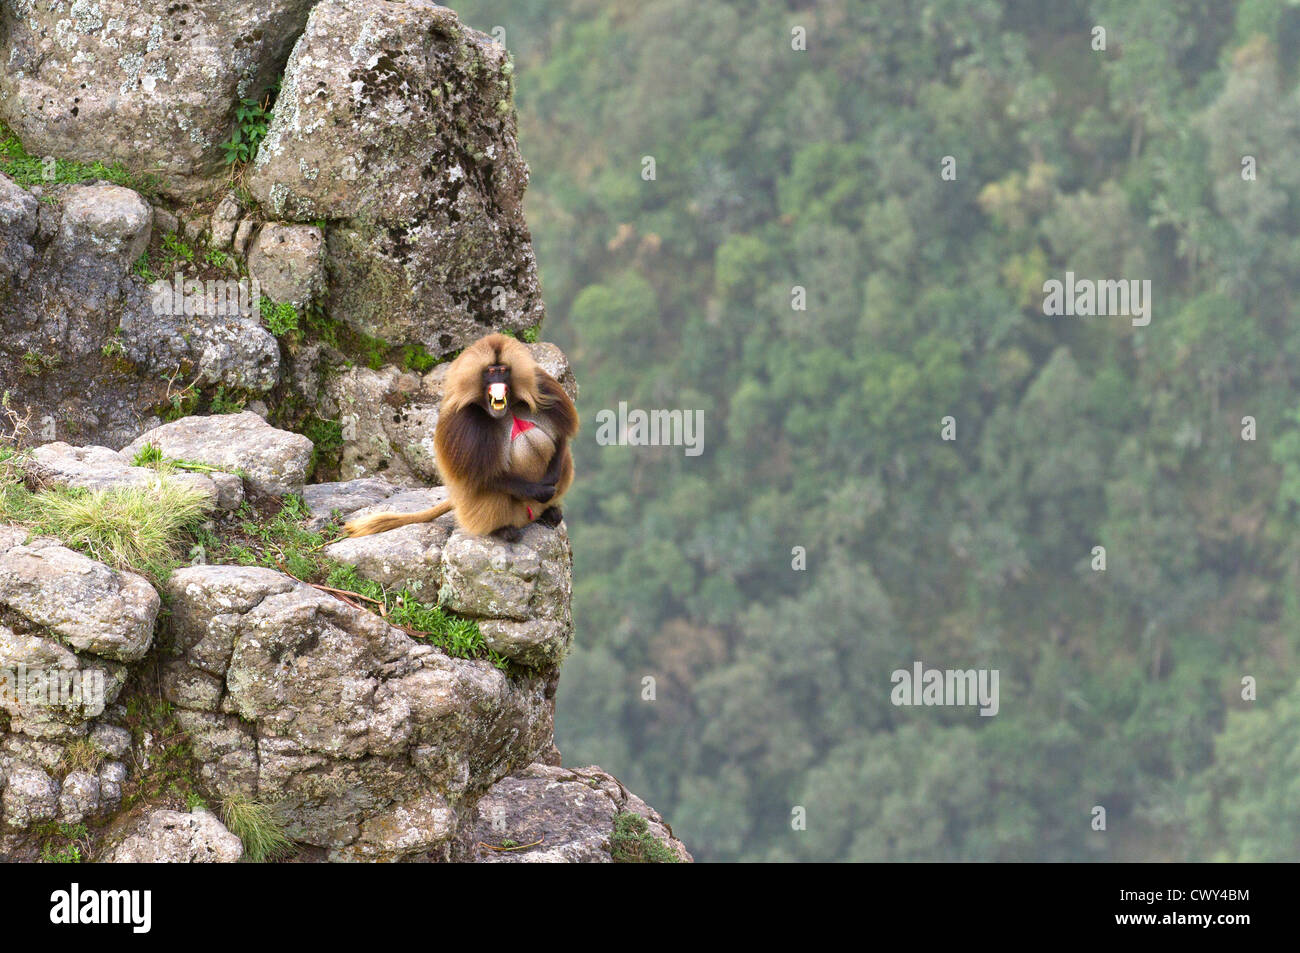 Male Gelada baboon 'Theropithecus gelada' showing sign of aggression on a cliff's edge Simien Mountains - Stock Image